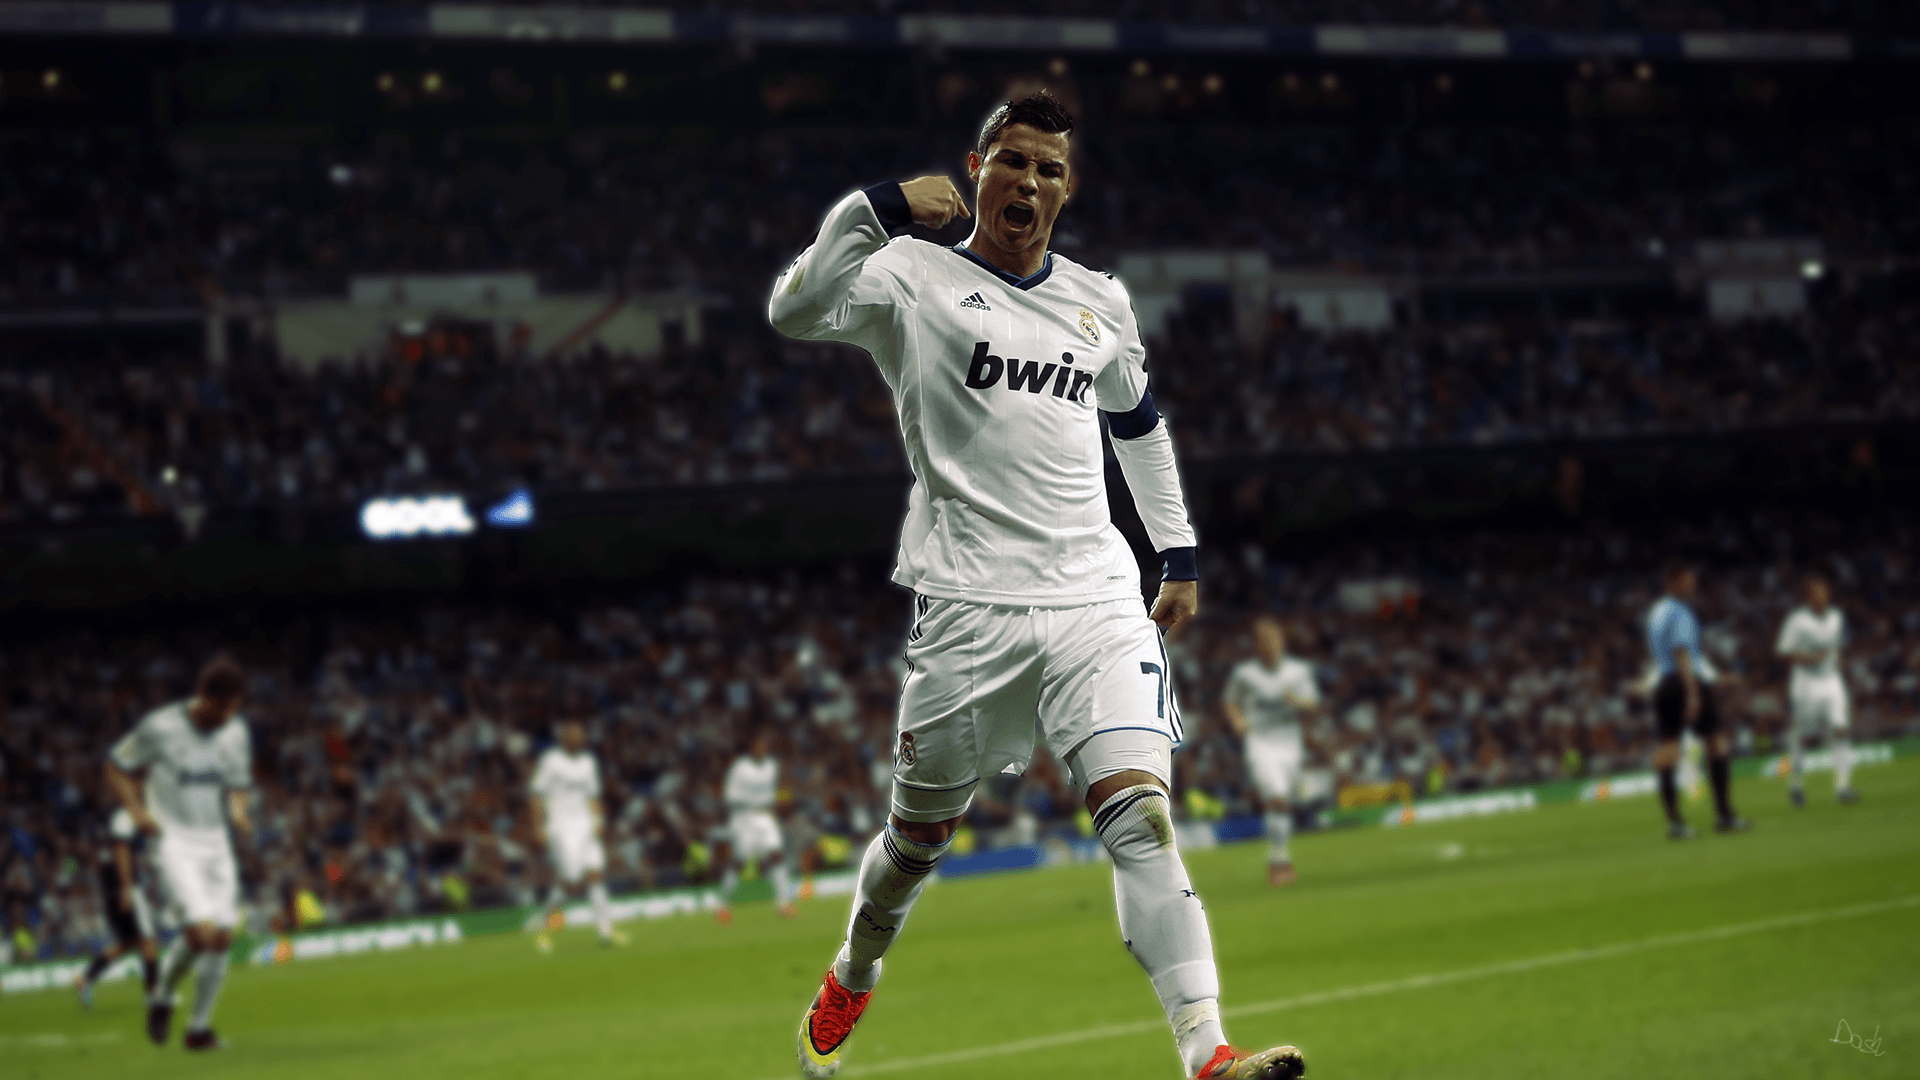 1920 x 1080 png 623kBCristiano